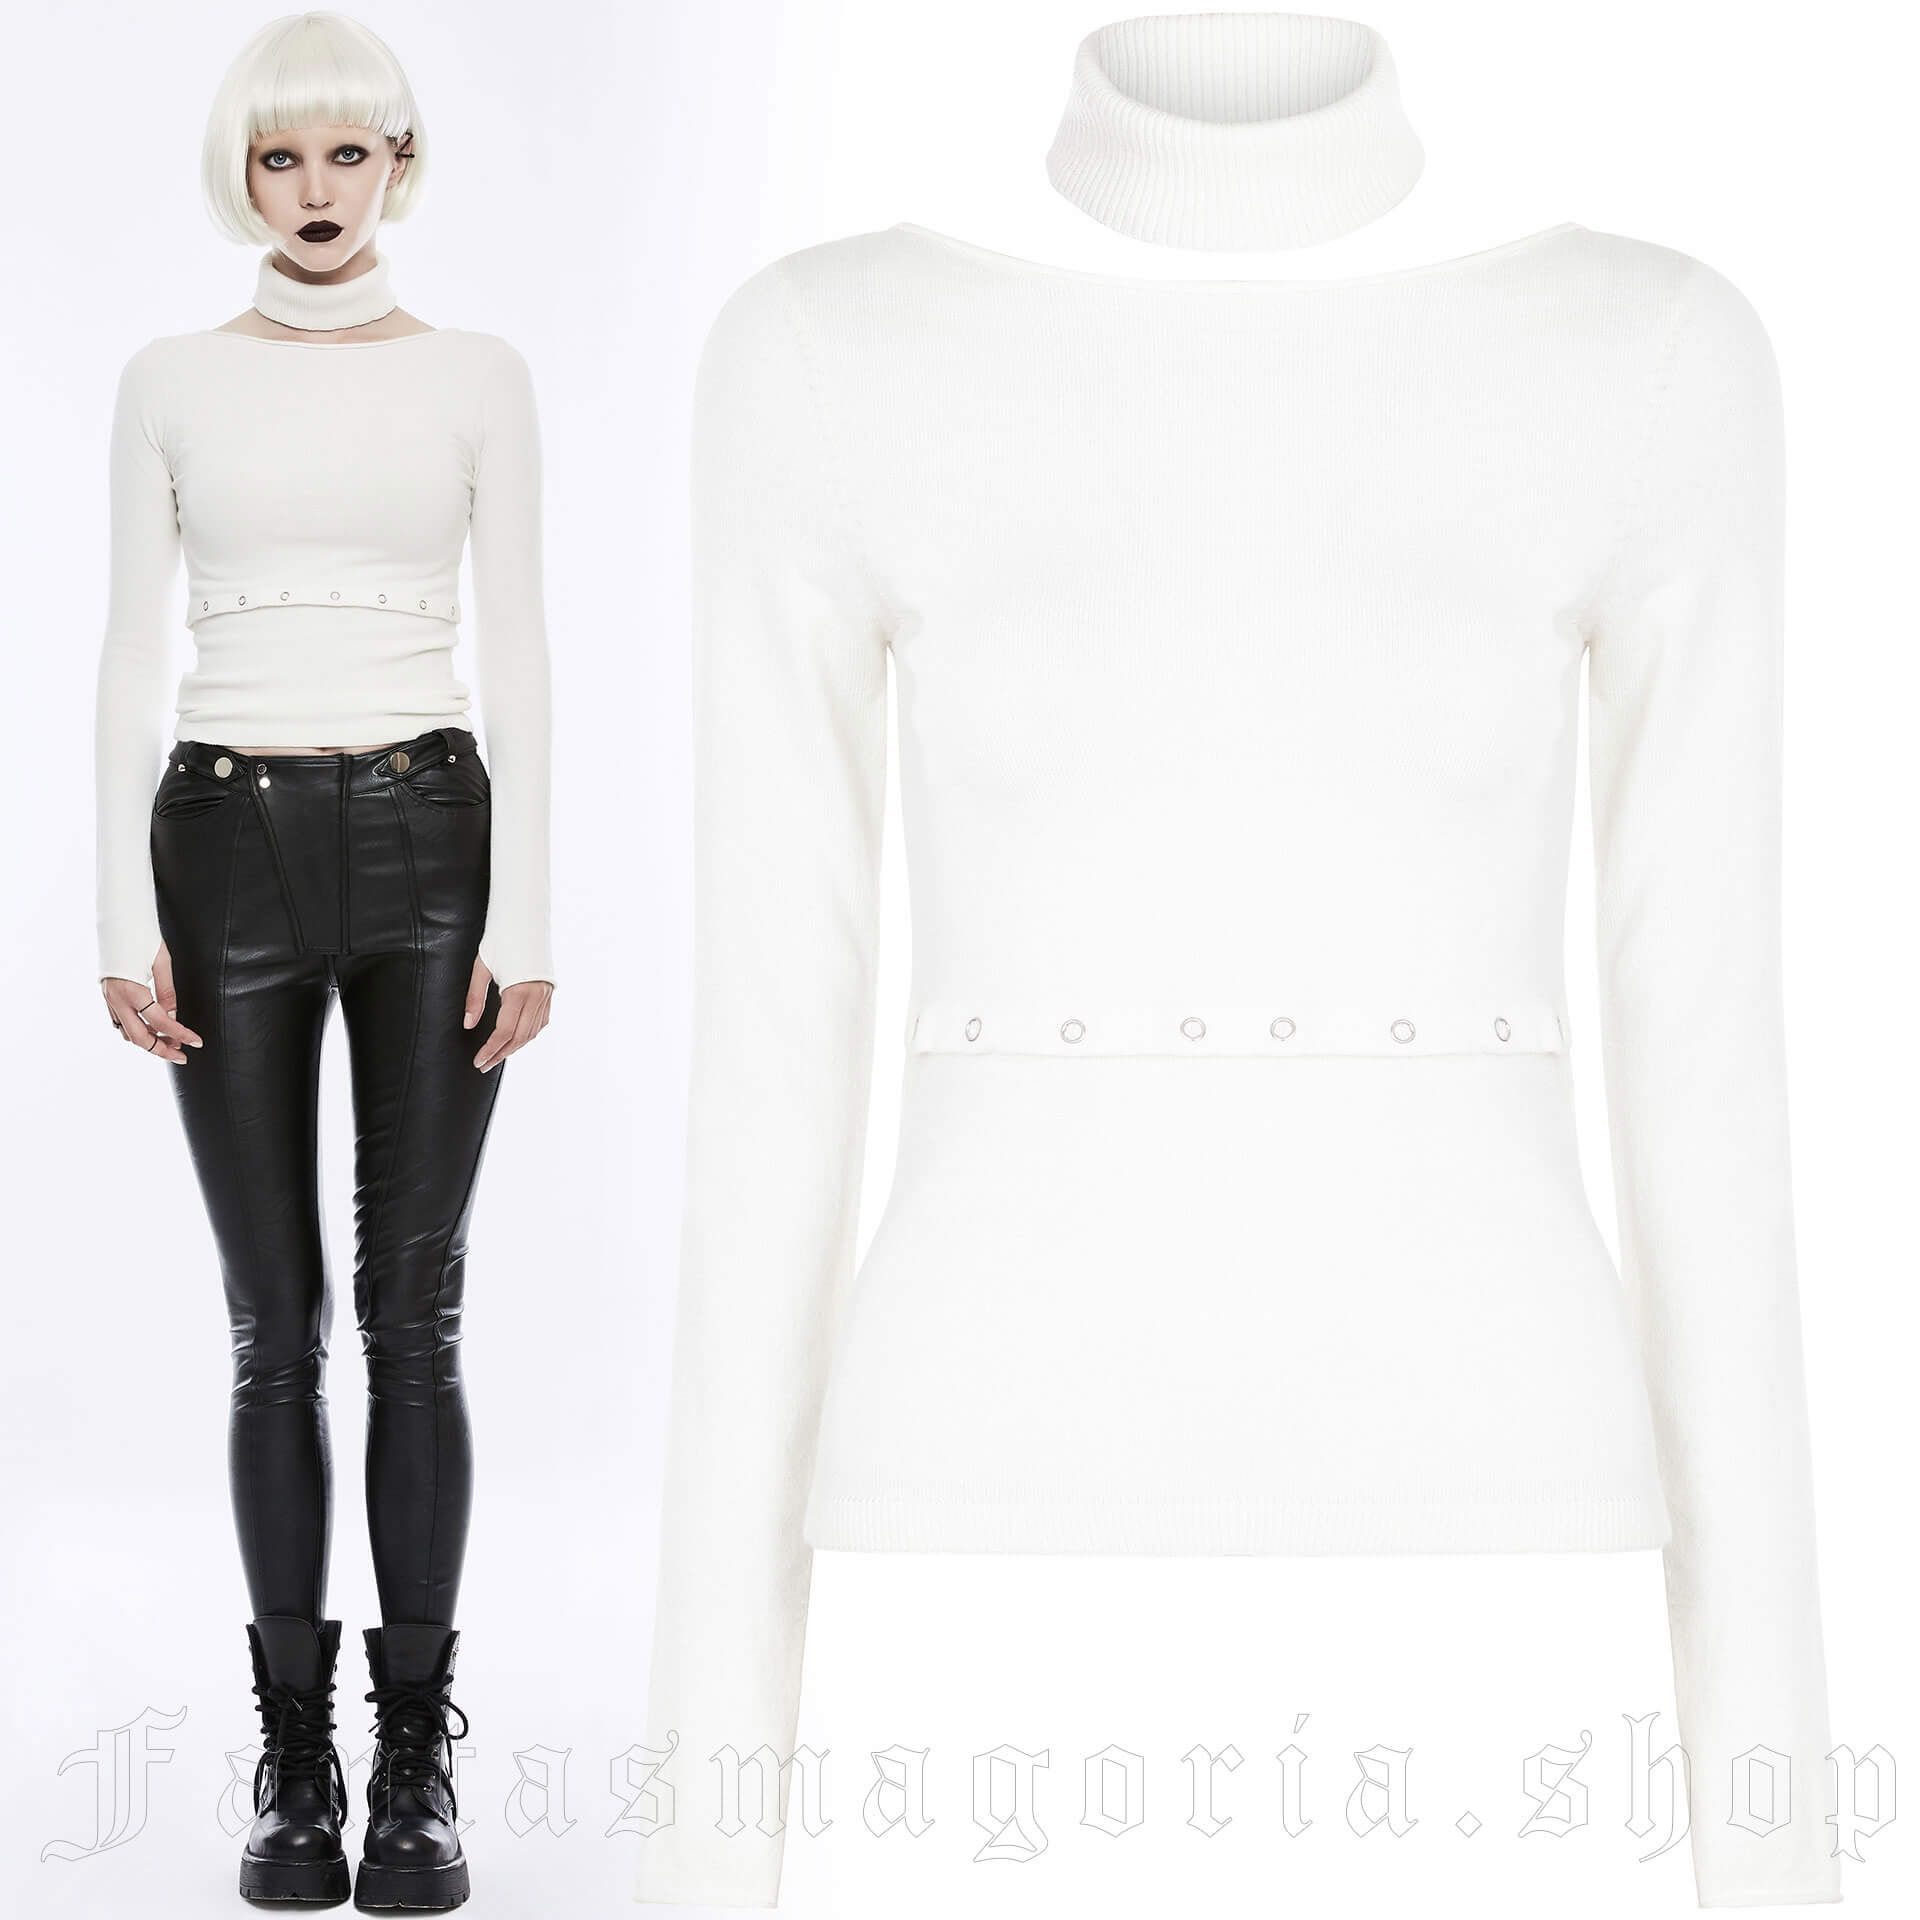 women's Lunaria Top by PUNK RAVE brand, code: OPM-071/WH